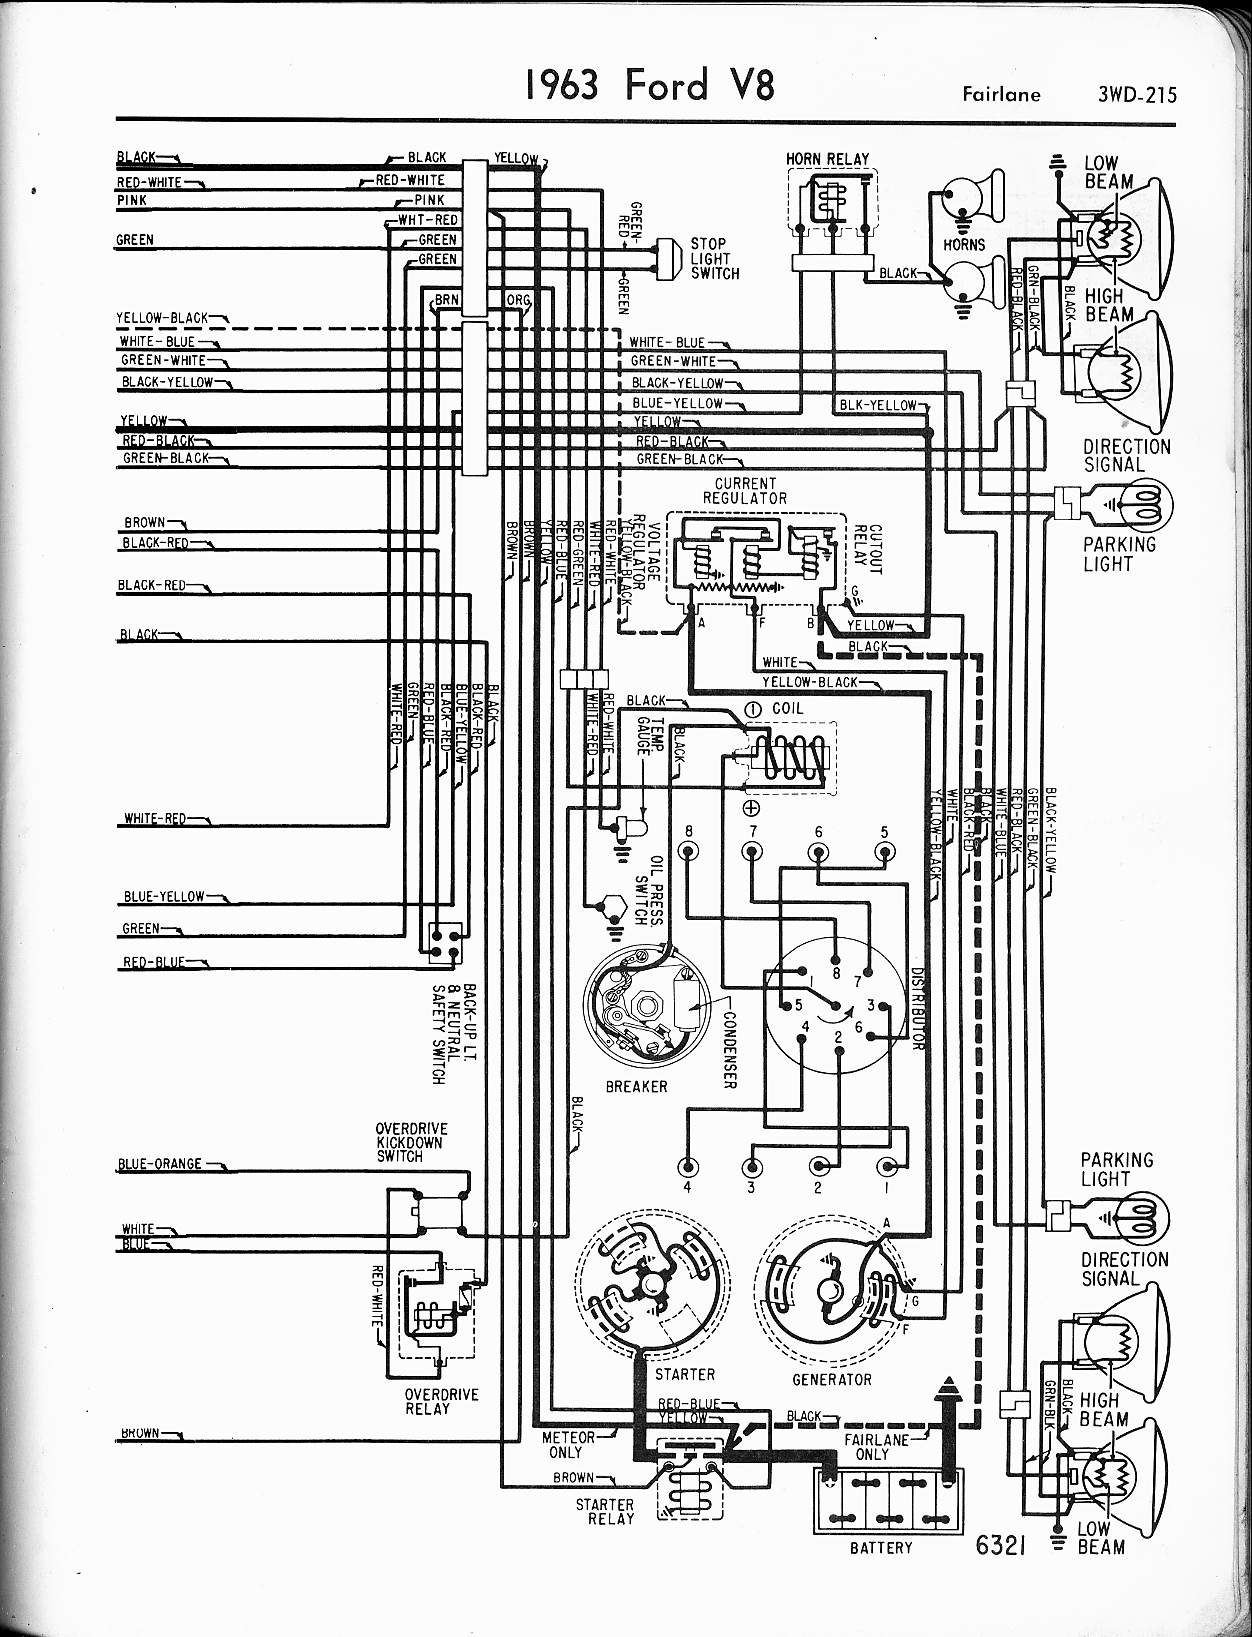 1956 ford thunderbird wiring diagram wiring diagrams schematic 1969 Thunderbird Black 57 65 ford wiring diagrams 1958 ford thunderbird wiring diagram 1956 ford thunderbird wiring diagram